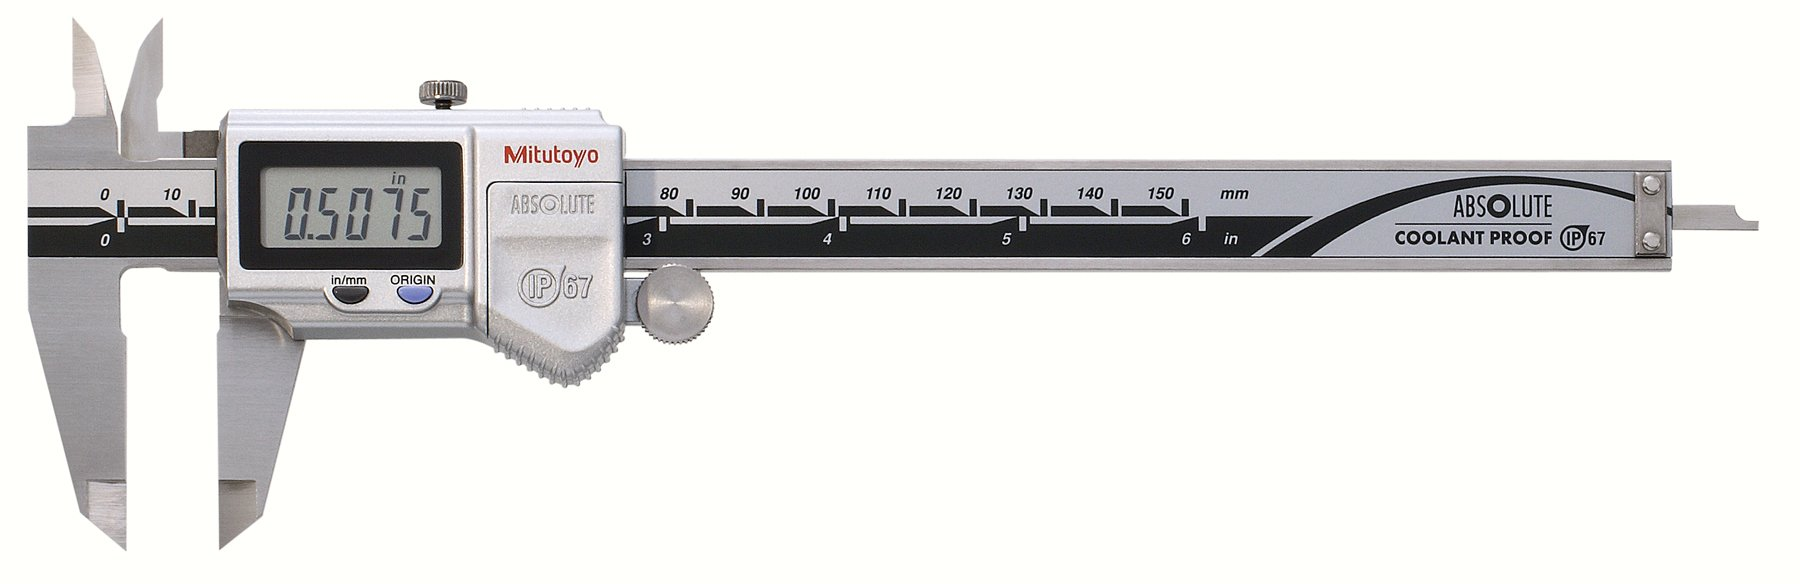 Mitutoyo 500-752-10 Digital Calipers, Battery Powered, Inch/Metric, for Inside, Outside, Depth and Step Measurements, Stainless Steel, 0''/0mm-6''/150mm Range, +/-0.001''/0.01mm Accuracy, 0.0005''/0.01mm Resolution, Meets IP67 Specifications